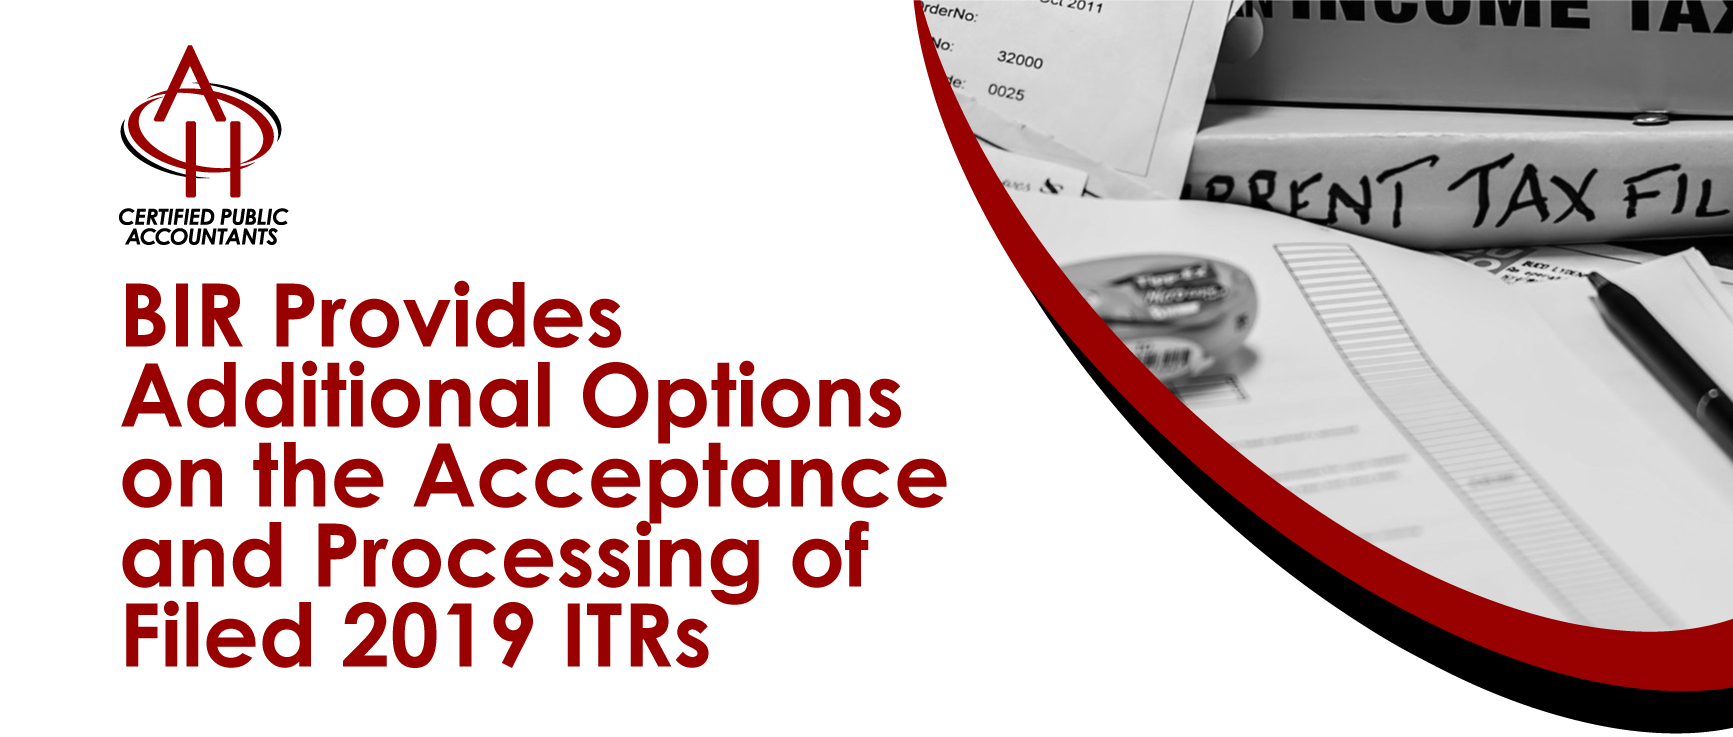 BIR 2019 Filed ITRs